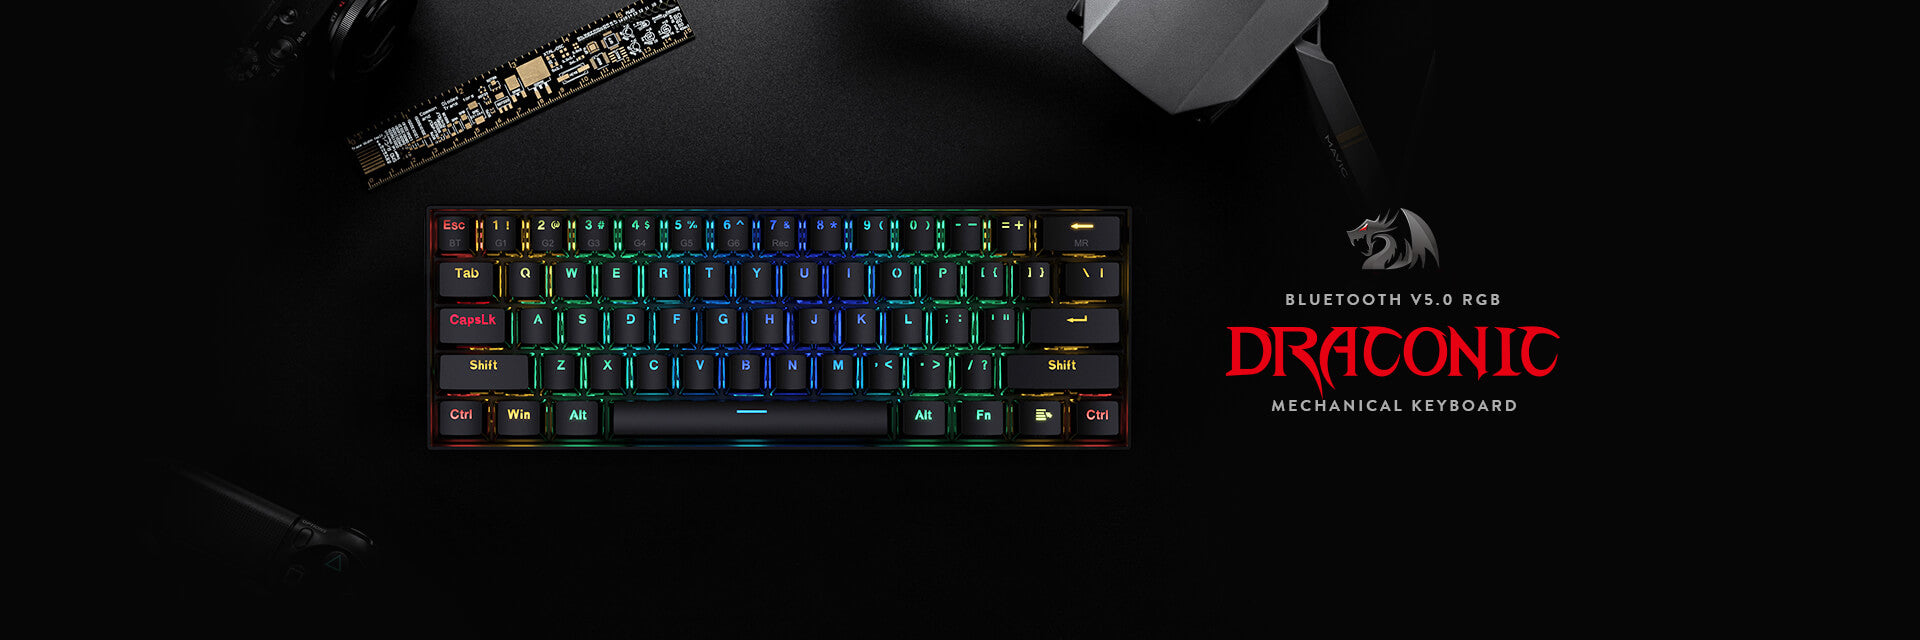 small gaming keyboard DRACONIC K530